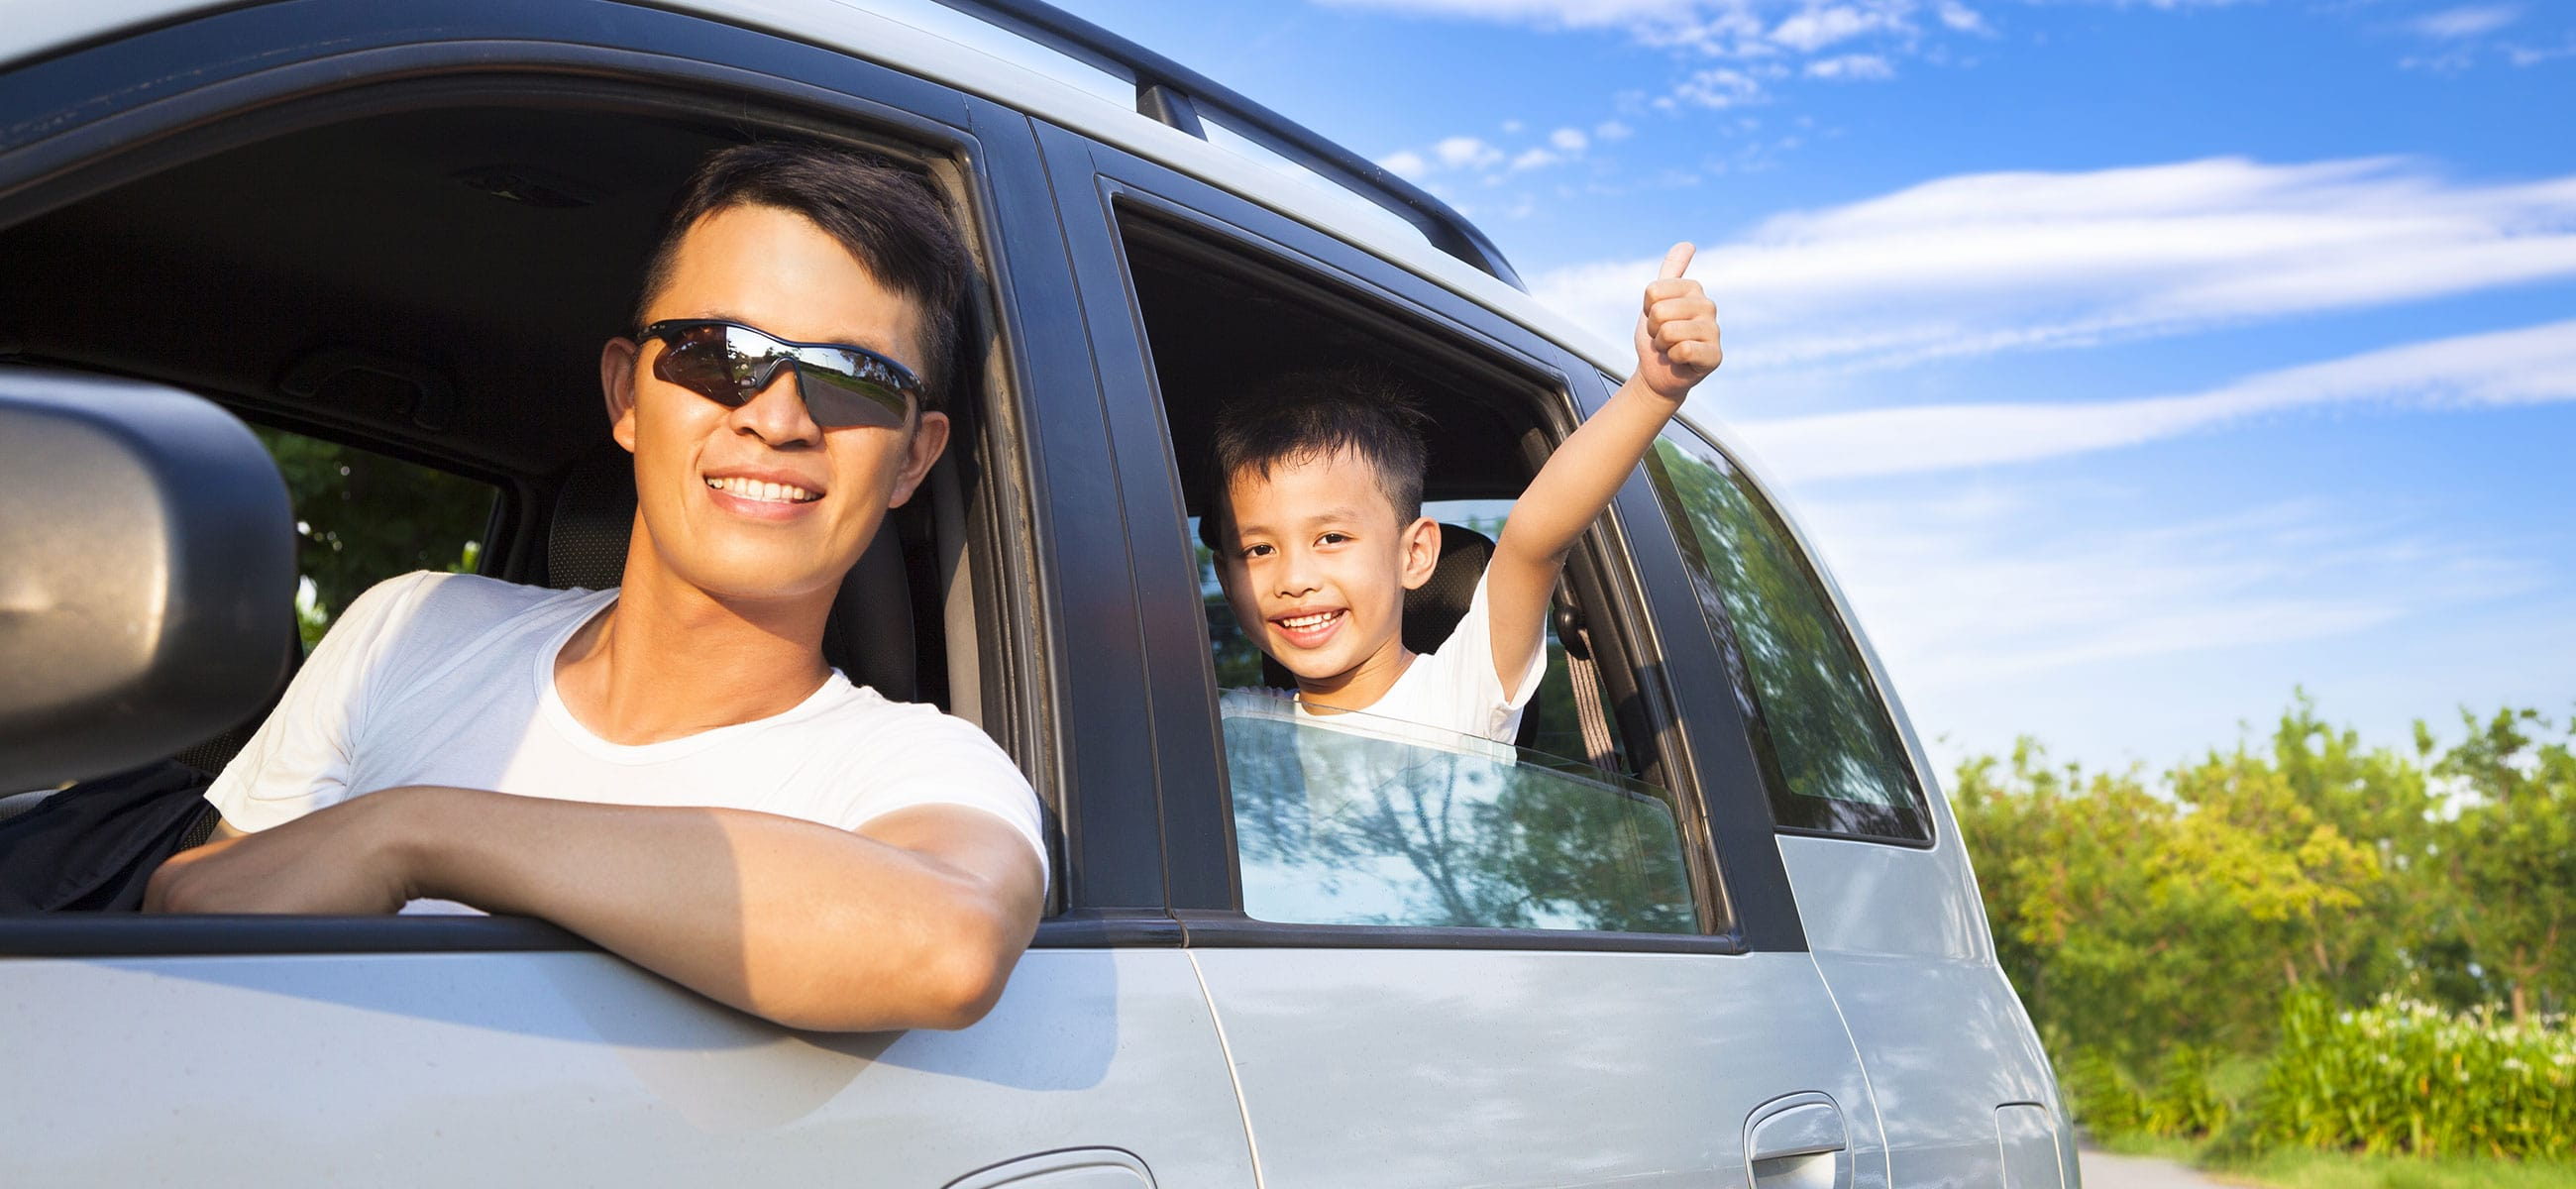 South Carolina Auto with Auto Insurance Coverage